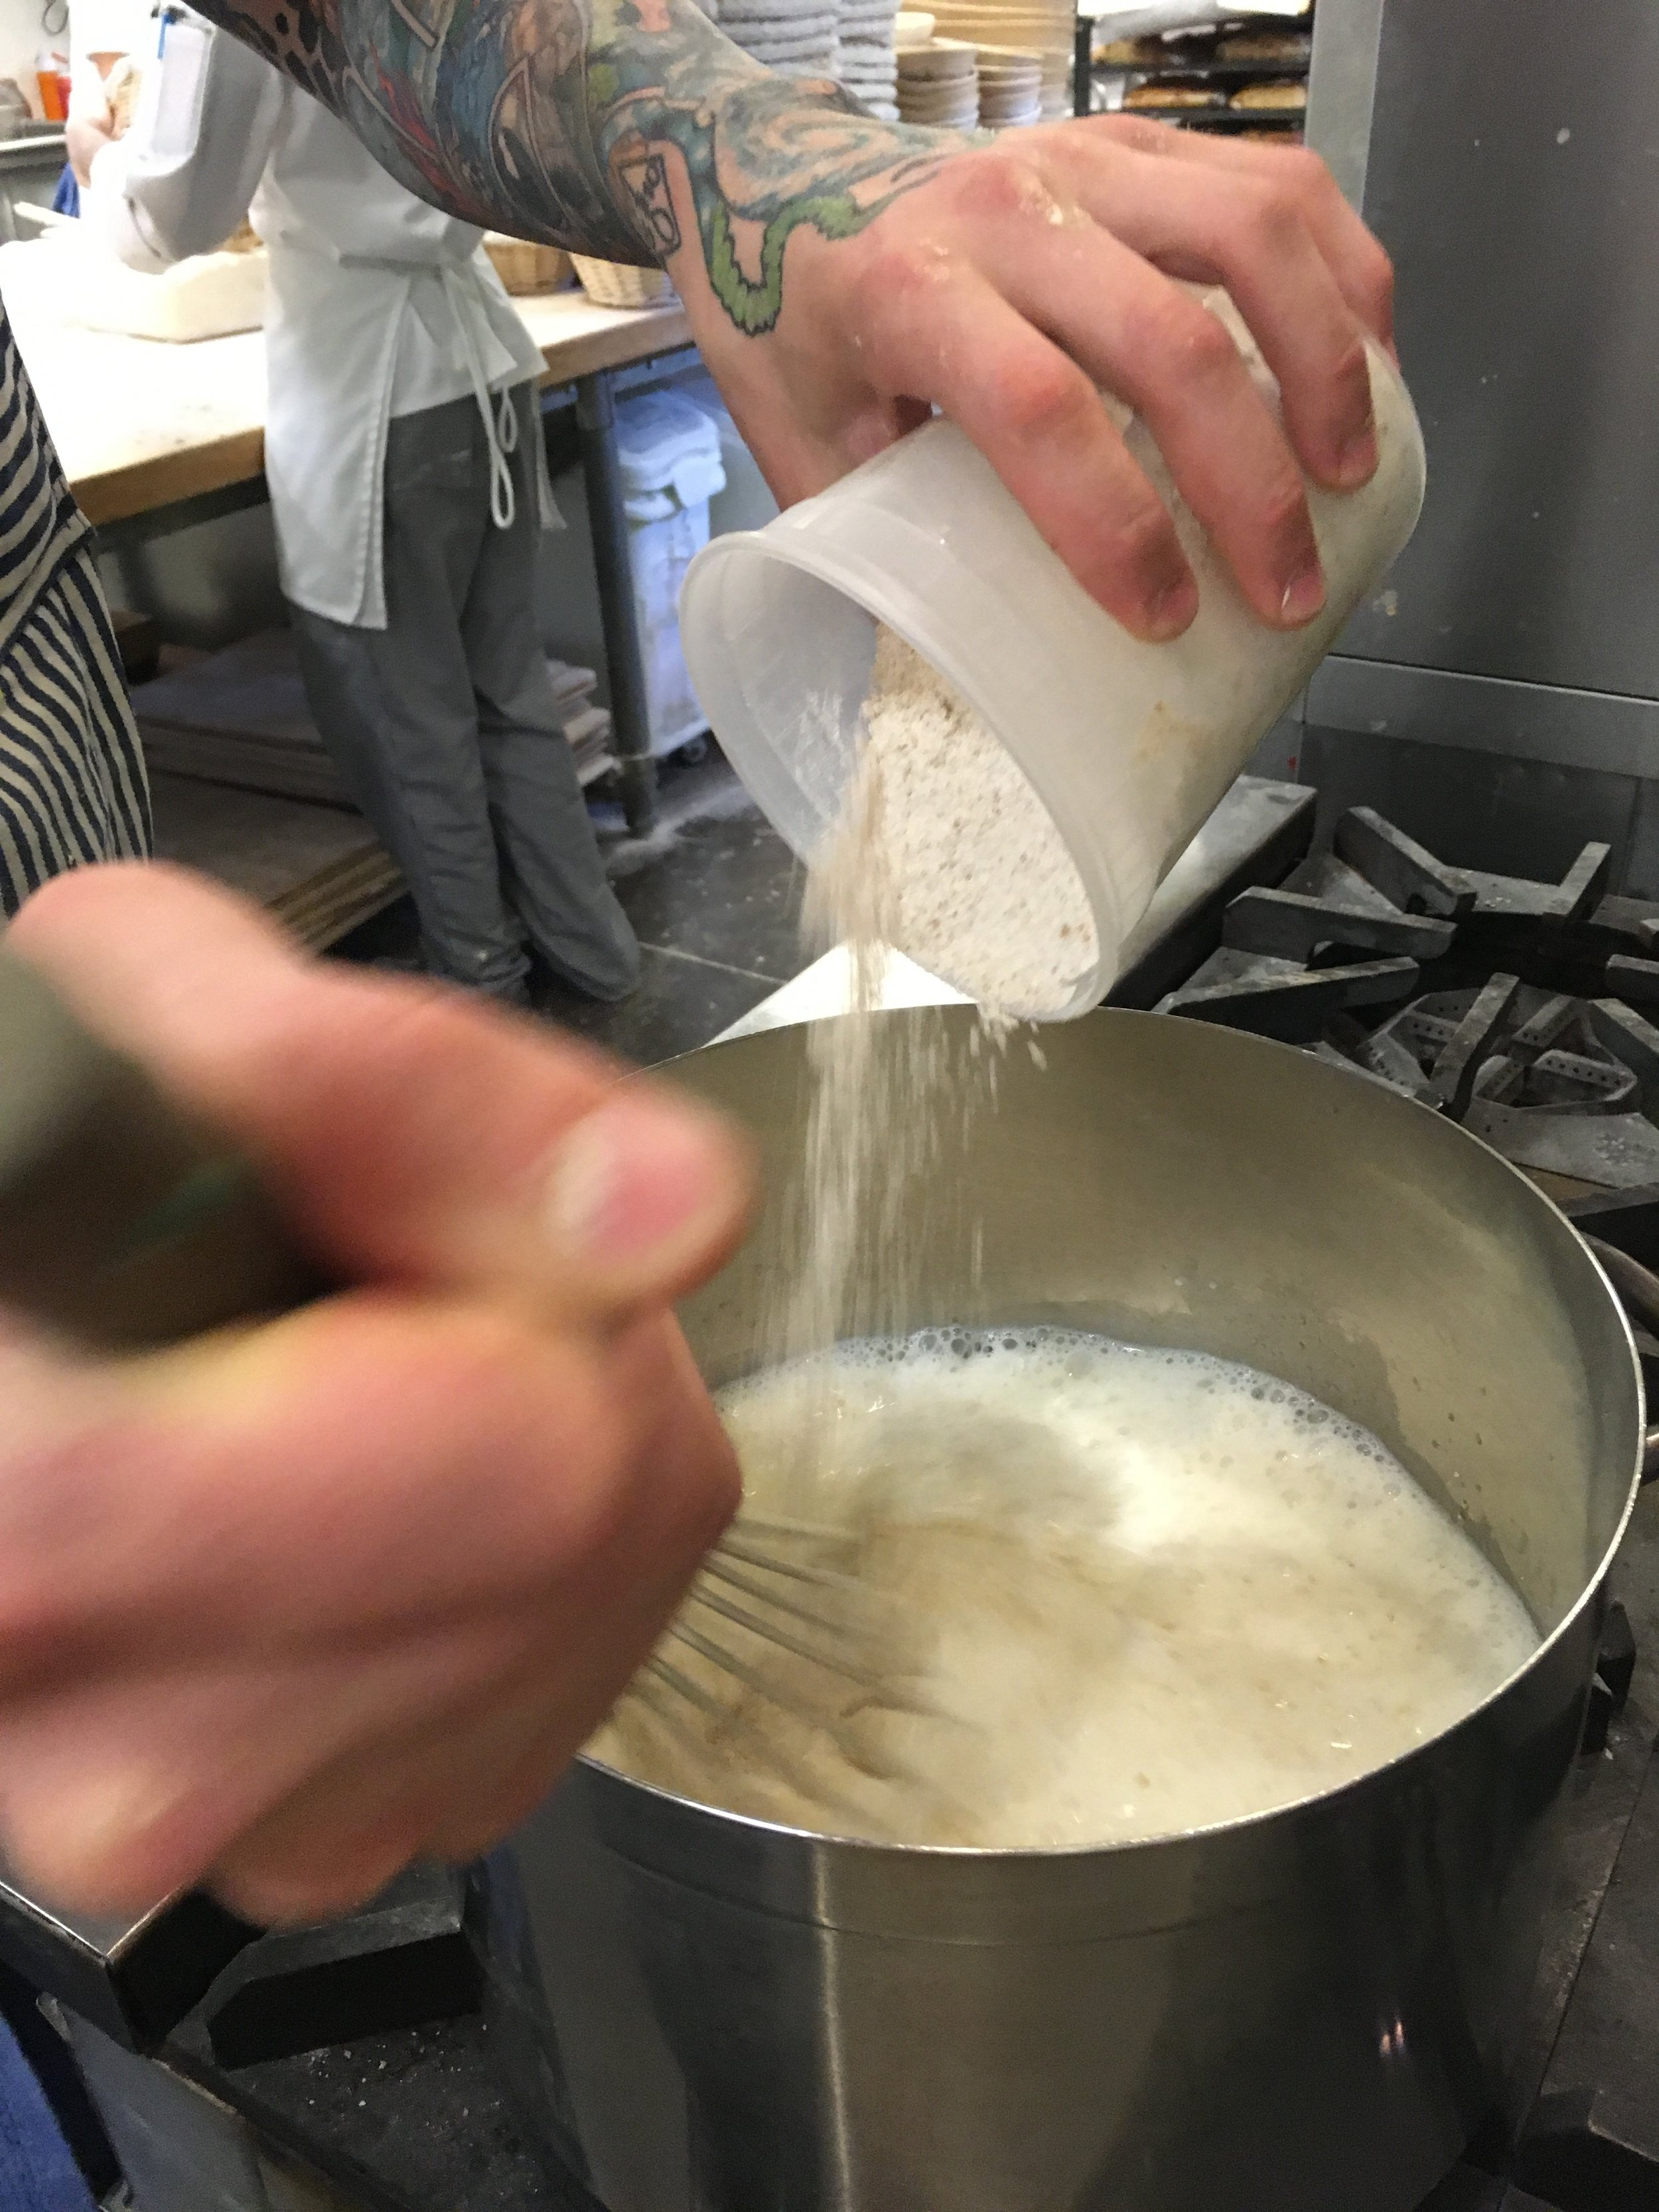 Whisking flour and salt into scalded milk and butter